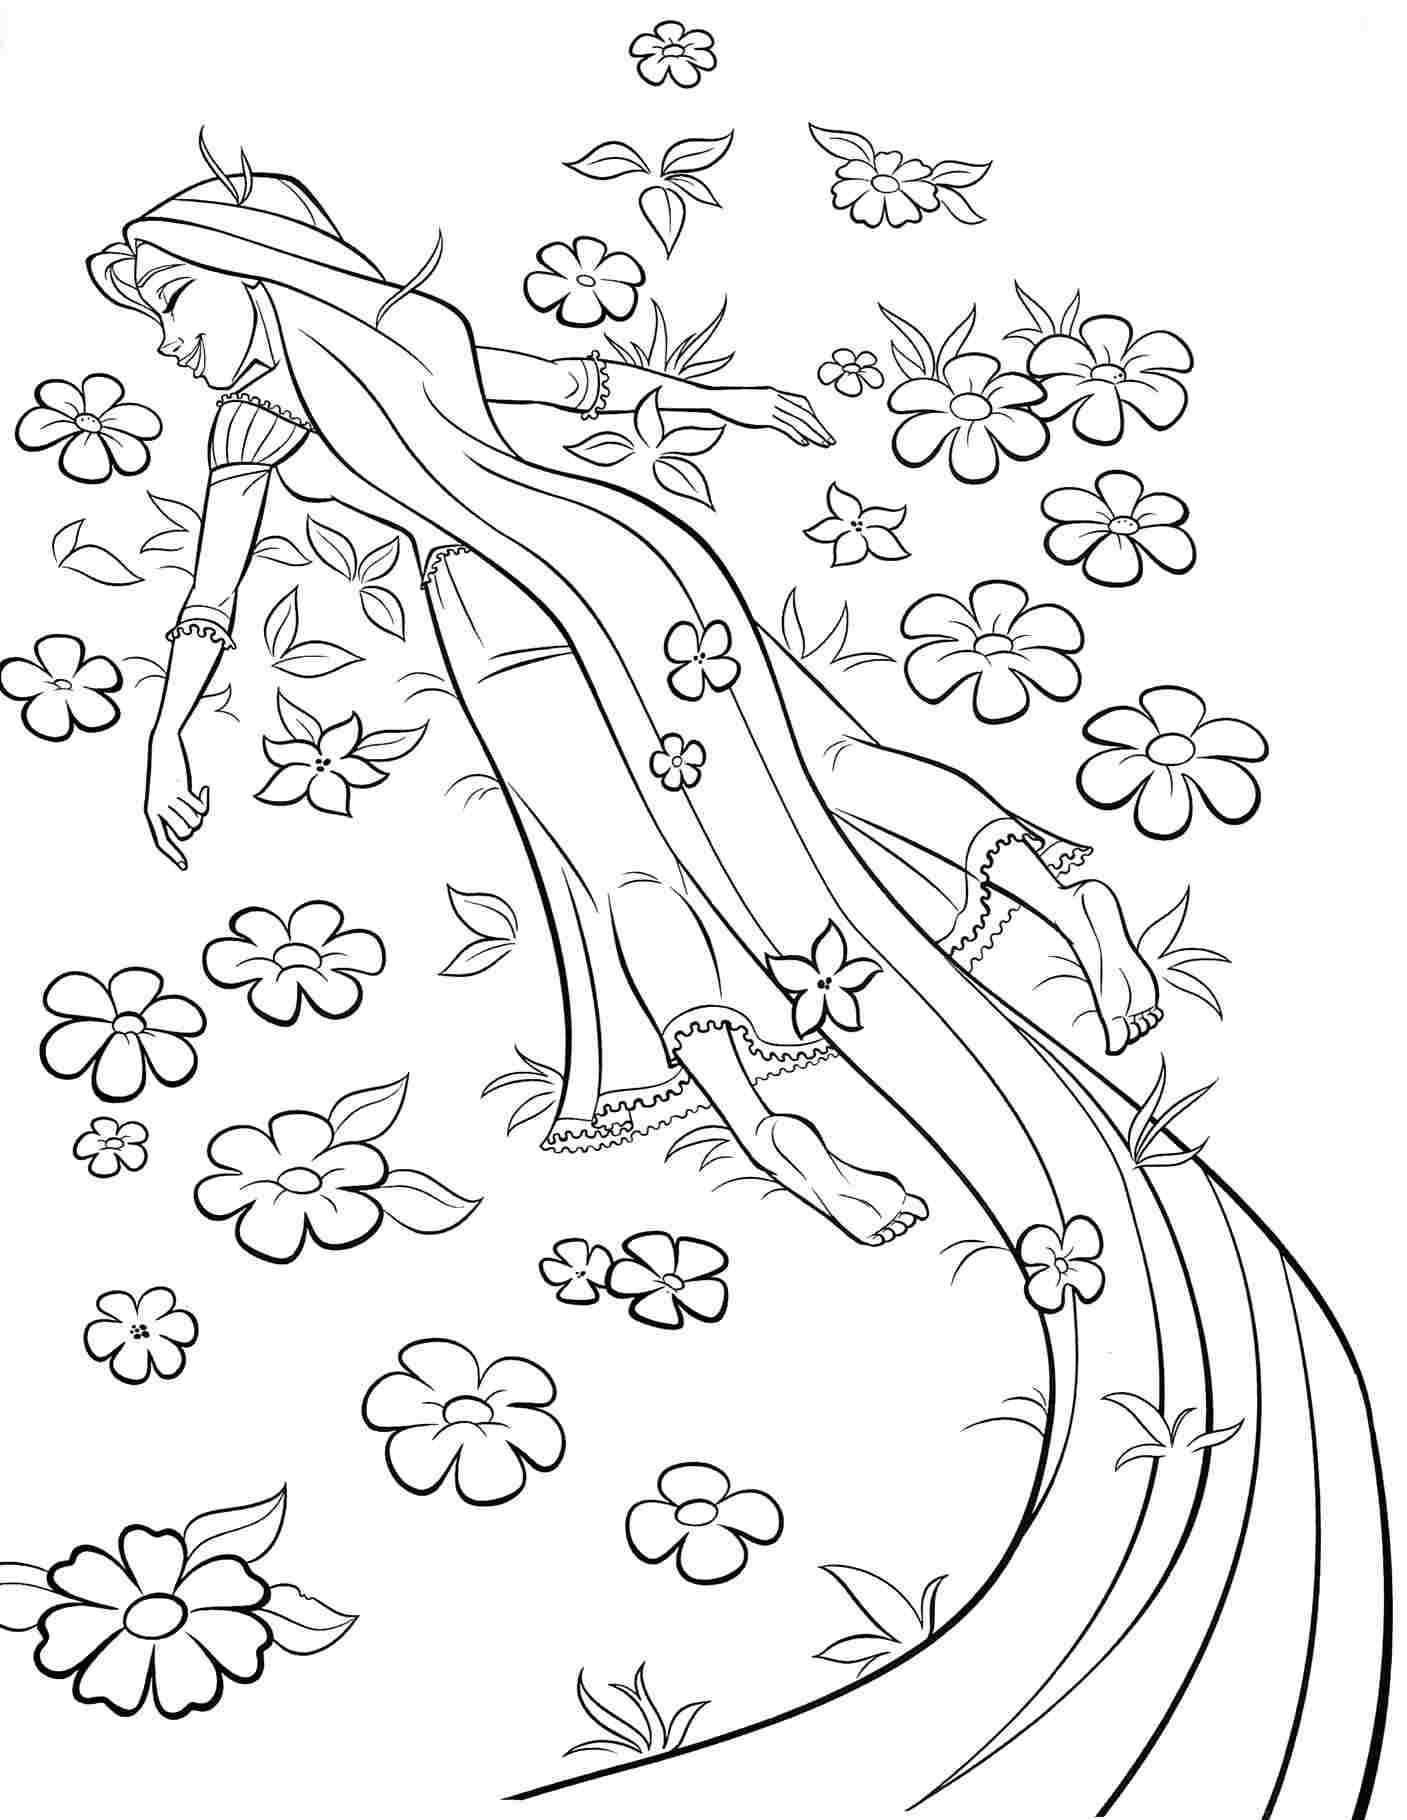 Disney Tangled Coloring Pages Printable Disney Princess Tangled Coloring Pages Rapunzel Coloring Pages Princess Coloring Pages